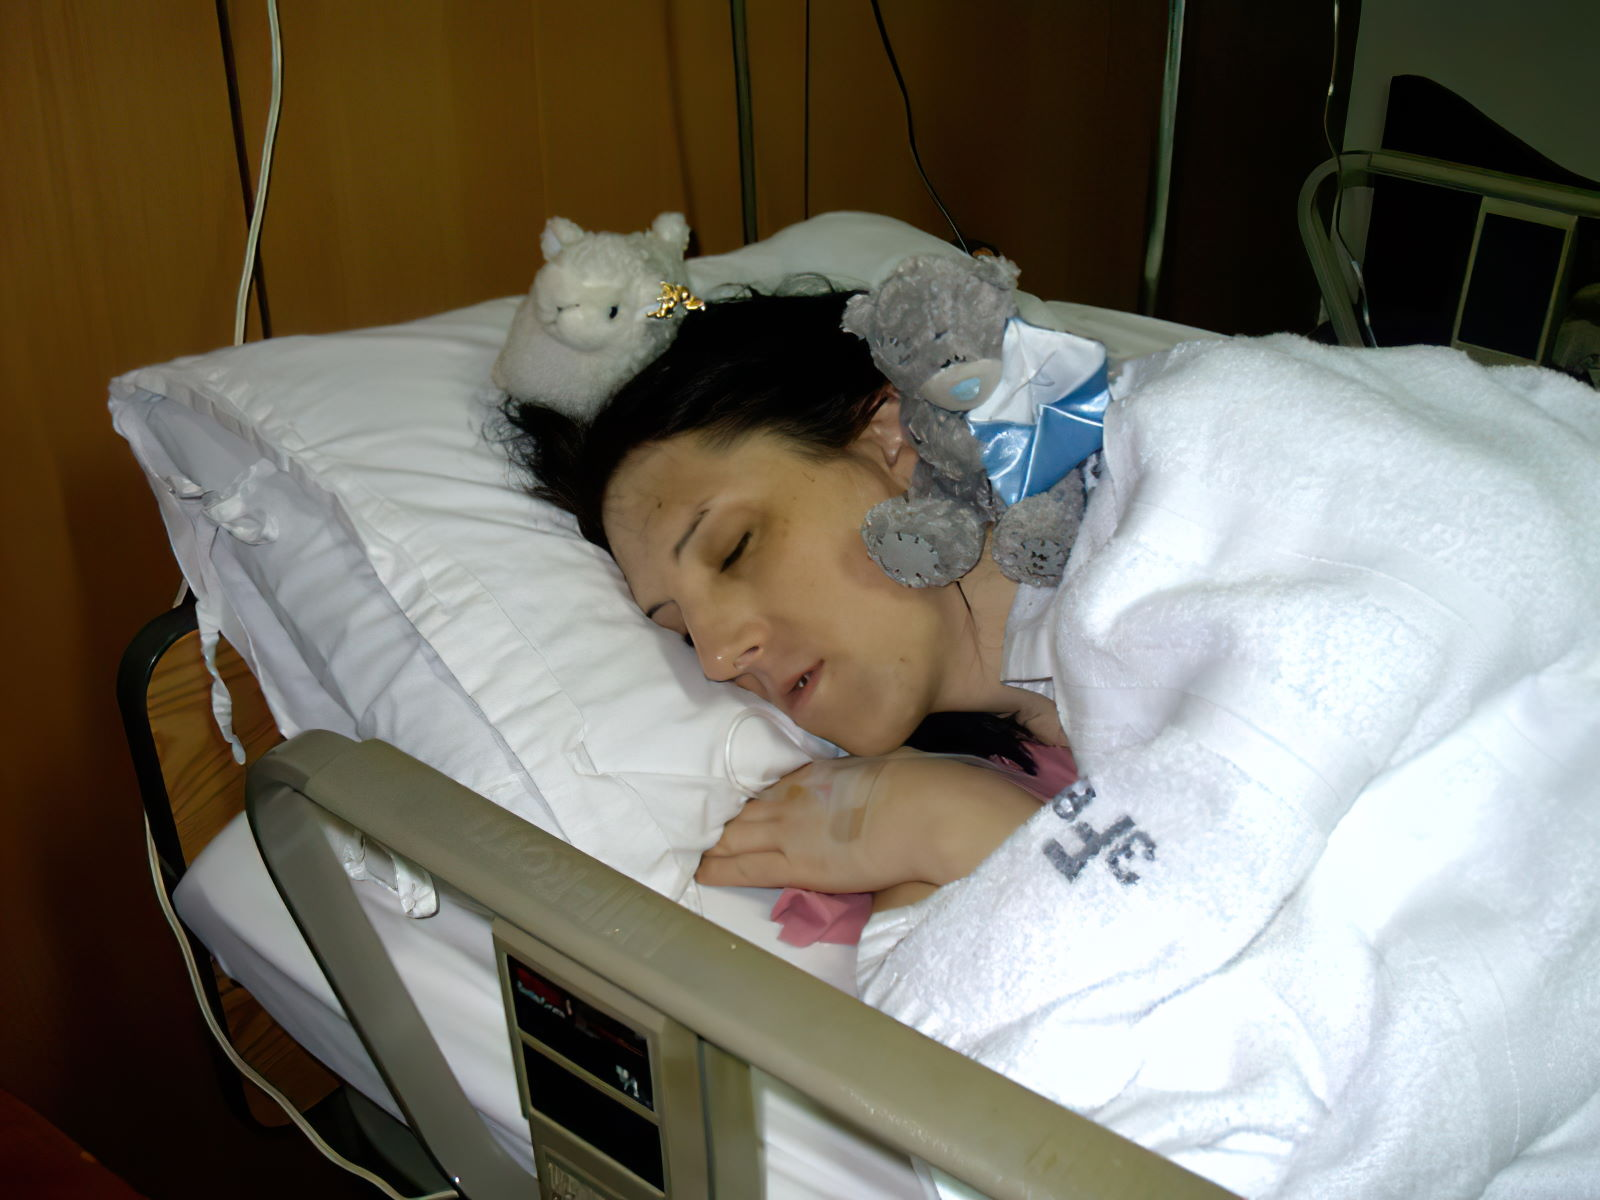 Asleep in my hospital bed a few hours after surgery